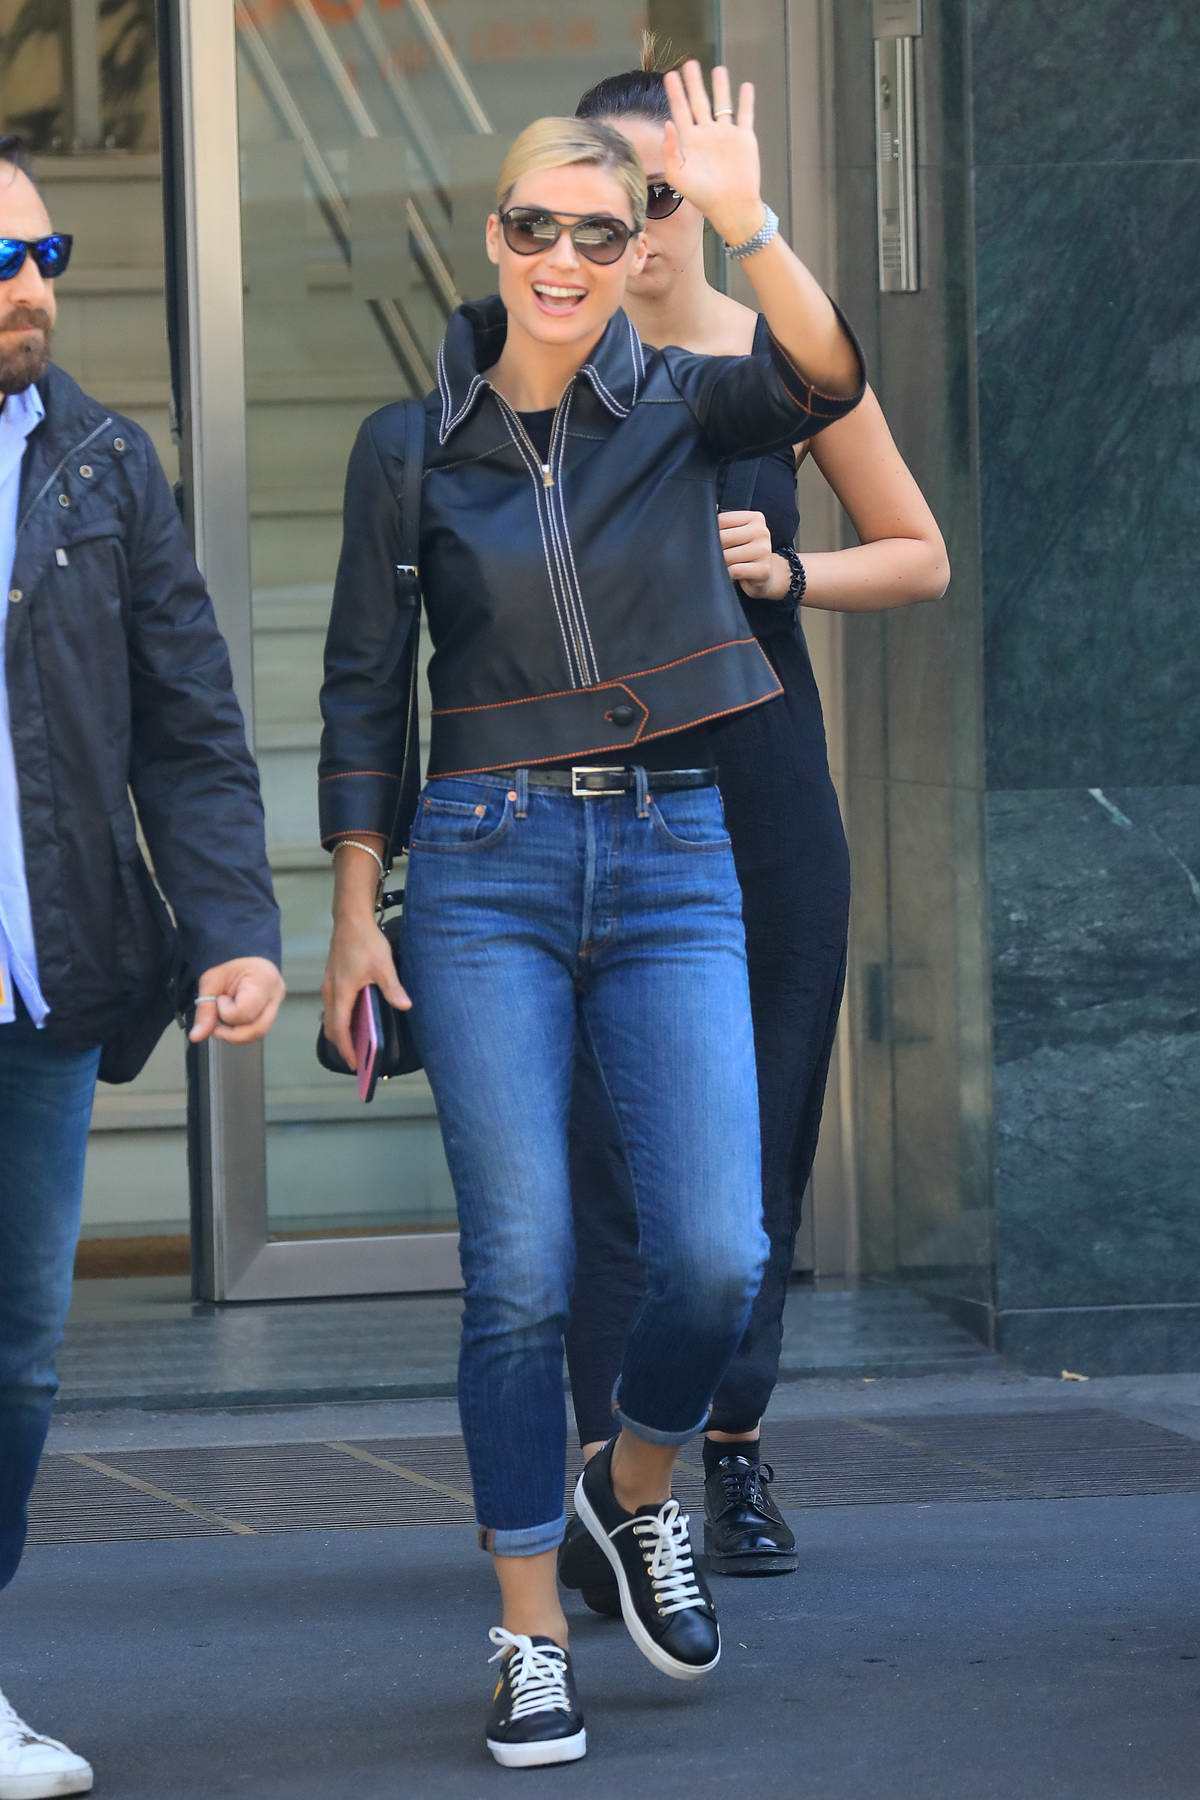 Michelle Hunziker with Aurora Ramazzotti out and about in Milan